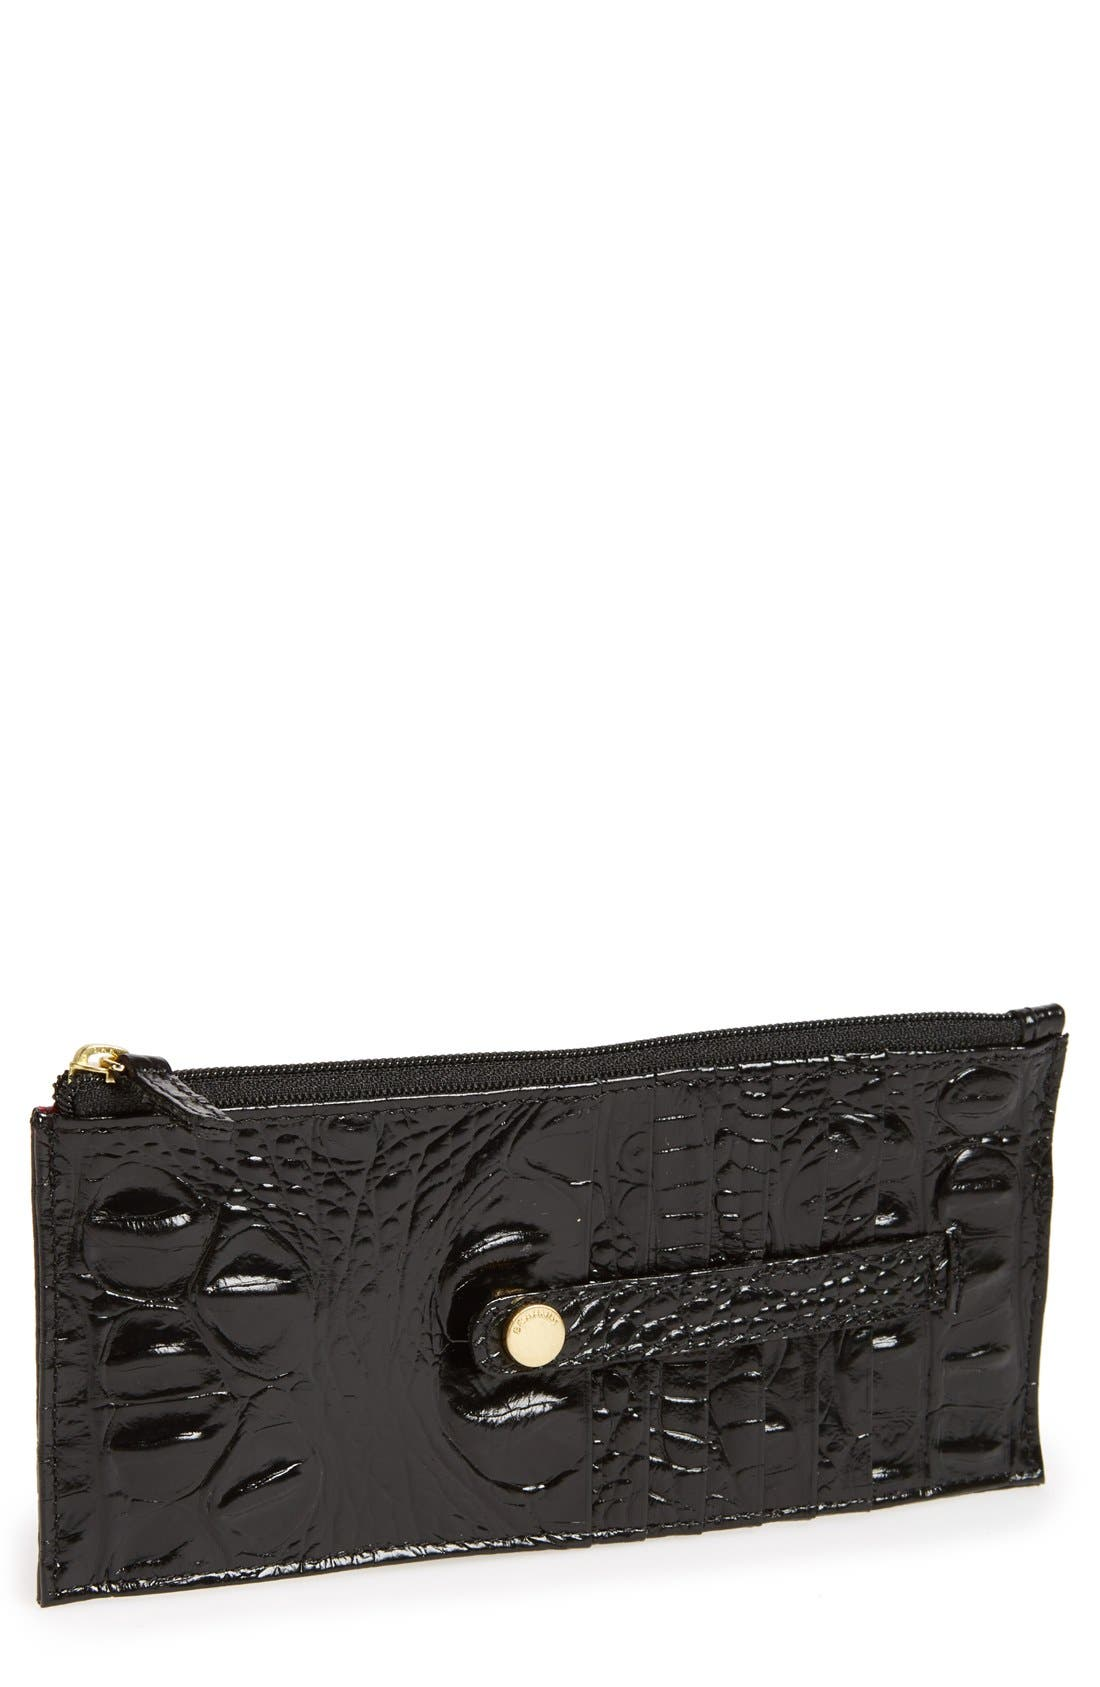 'Melbourne' Credit Card Wallet,                             Main thumbnail 1, color,                             Black